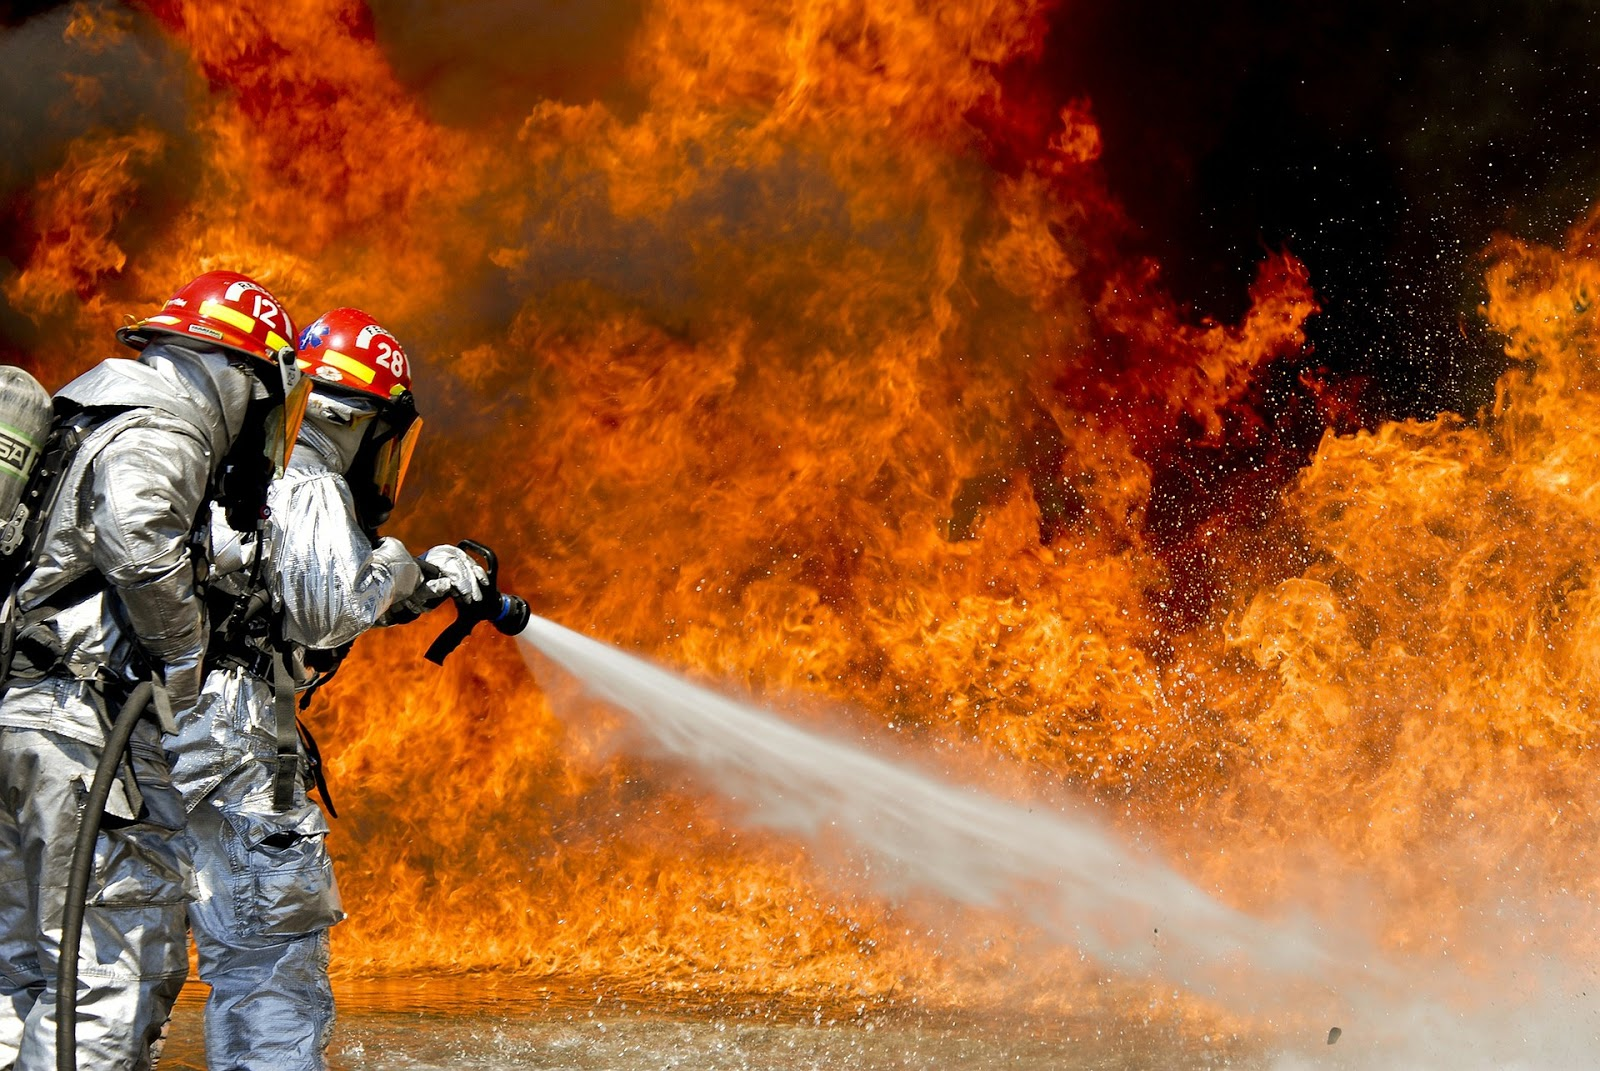 Herbs for inflammation: Fire fighters spray water on a large fire